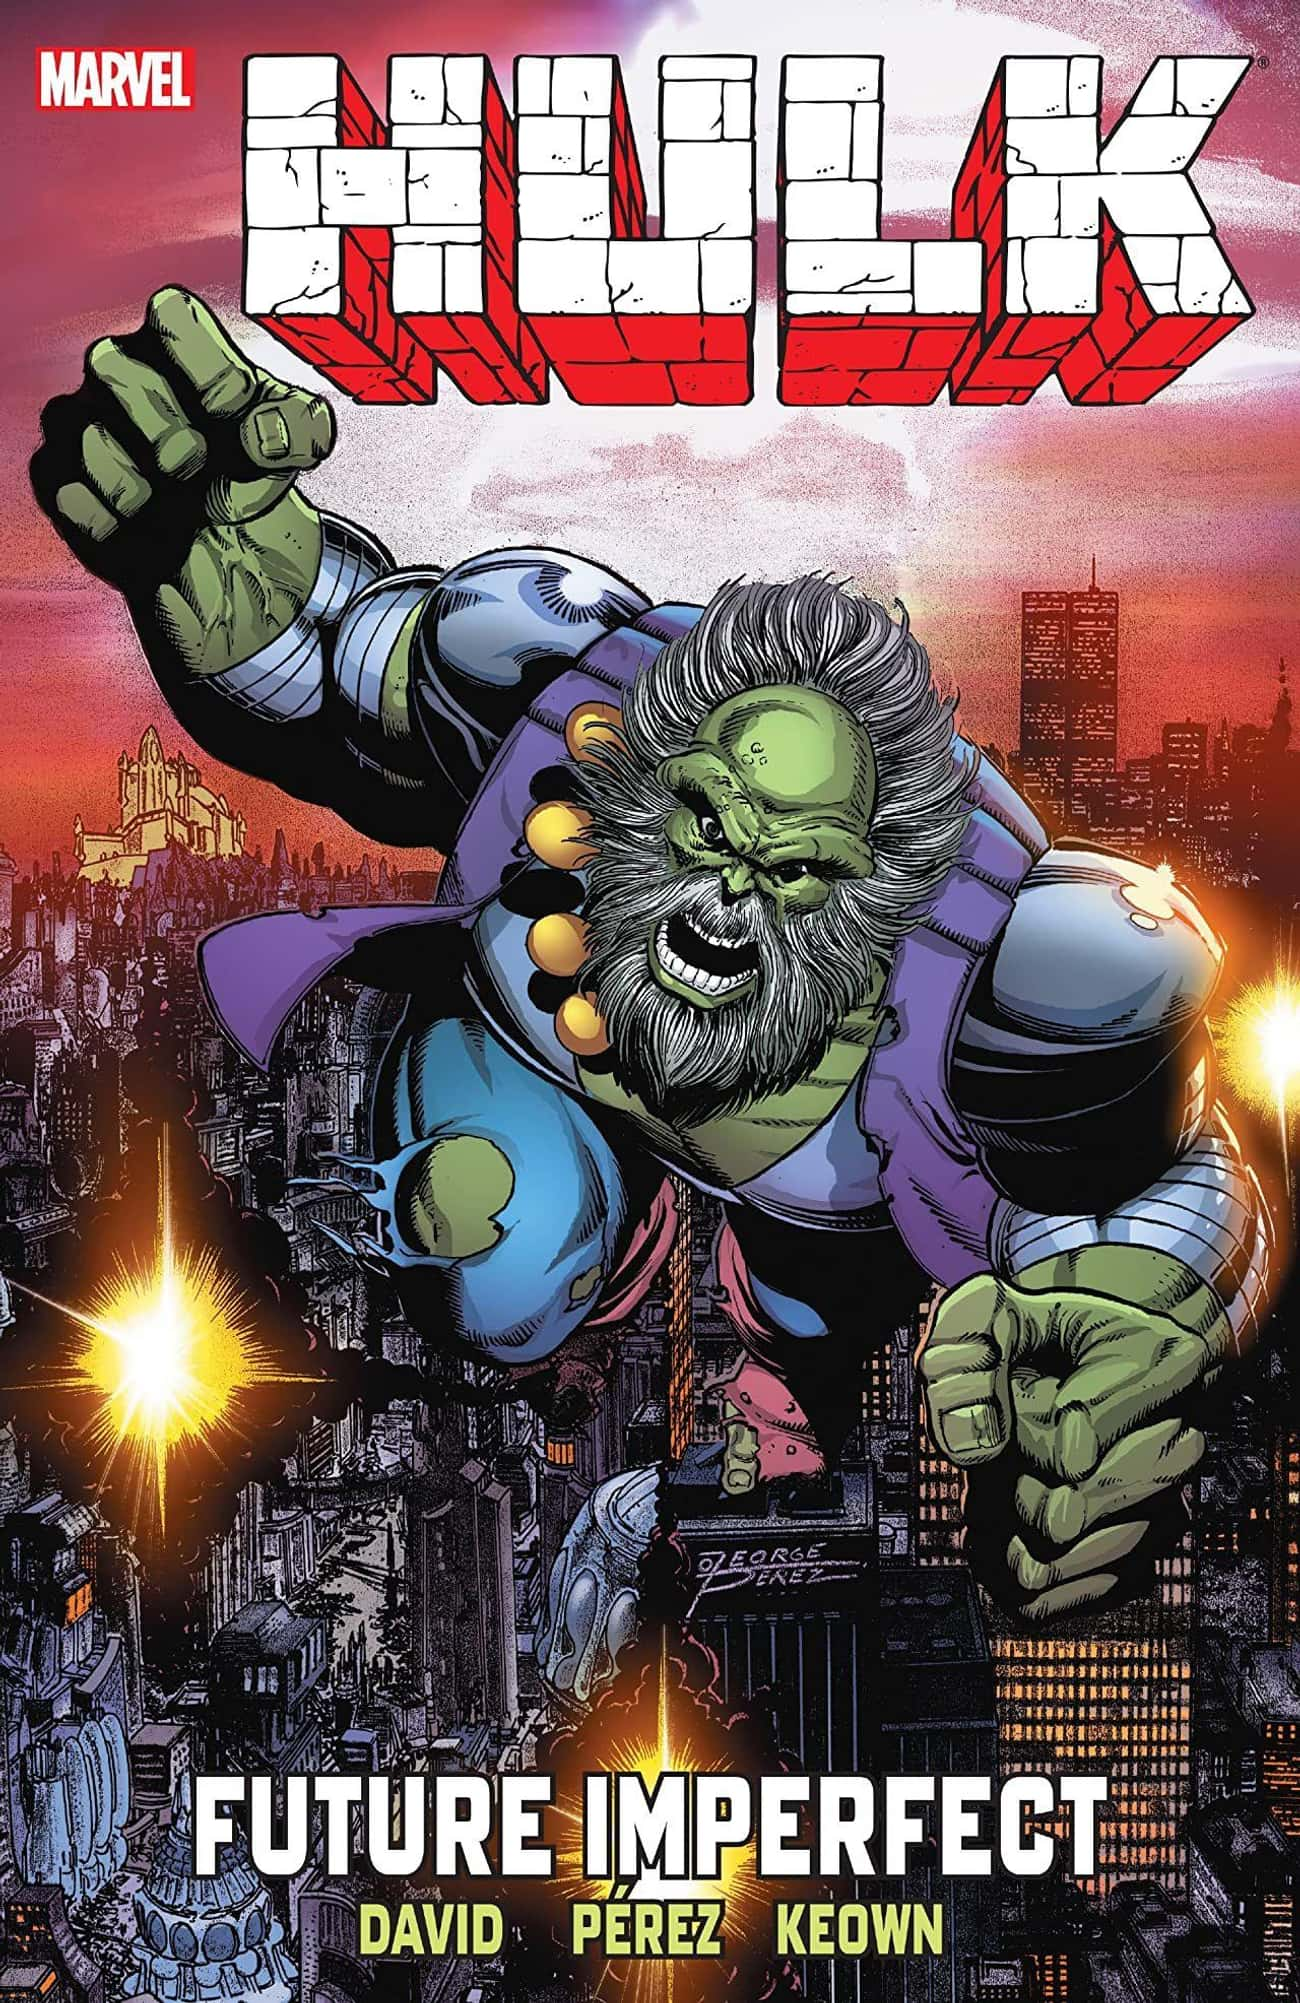 Hulk: Future Imperfect is listed (or ranked) 2 on the list The Best Post-Apocalyptic Comics On ComiXology To Binge Read